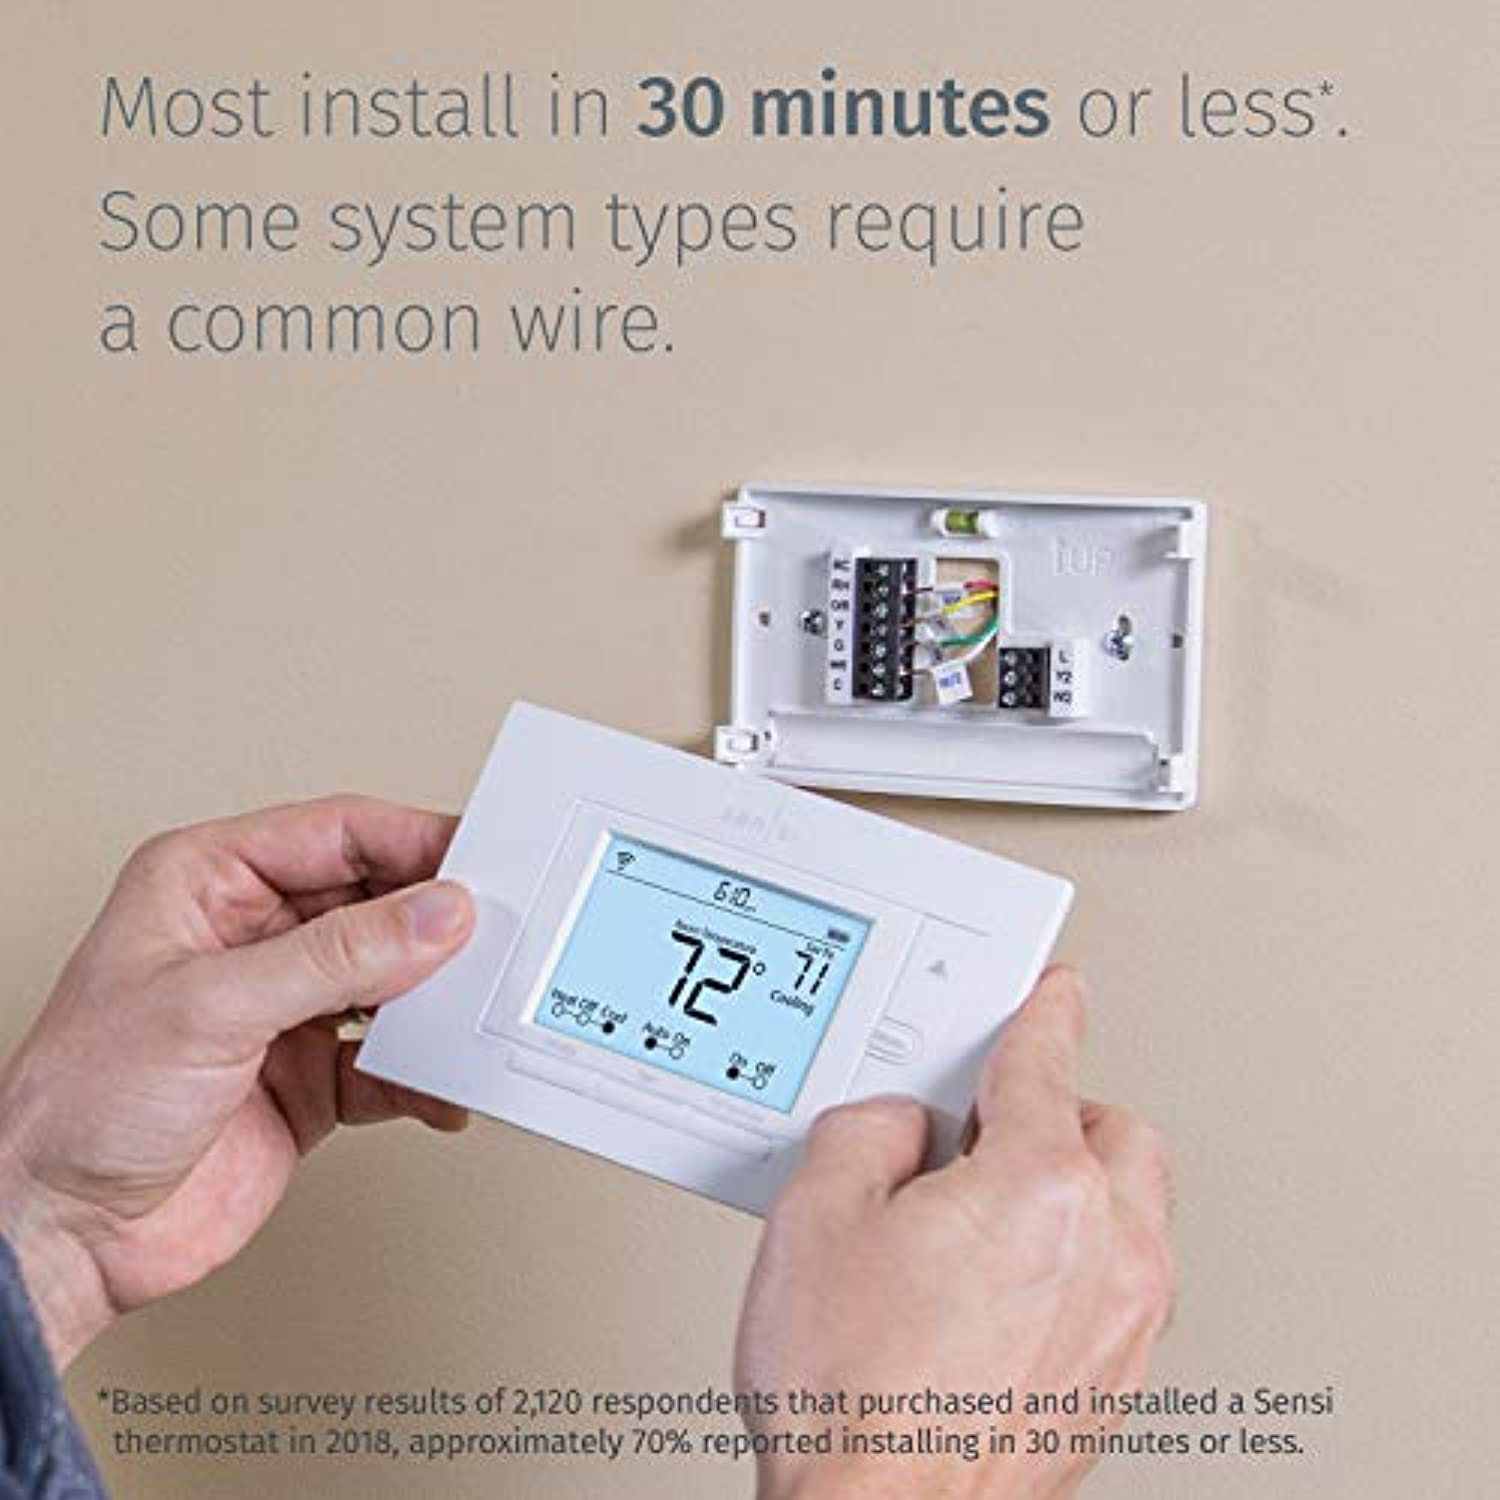 Classier: Buy Sensi Emerson Sensi Wi-Fi Smart Thermostat for Smart Home, DIY, Works With Alexa, Energy Star Certified, ST55